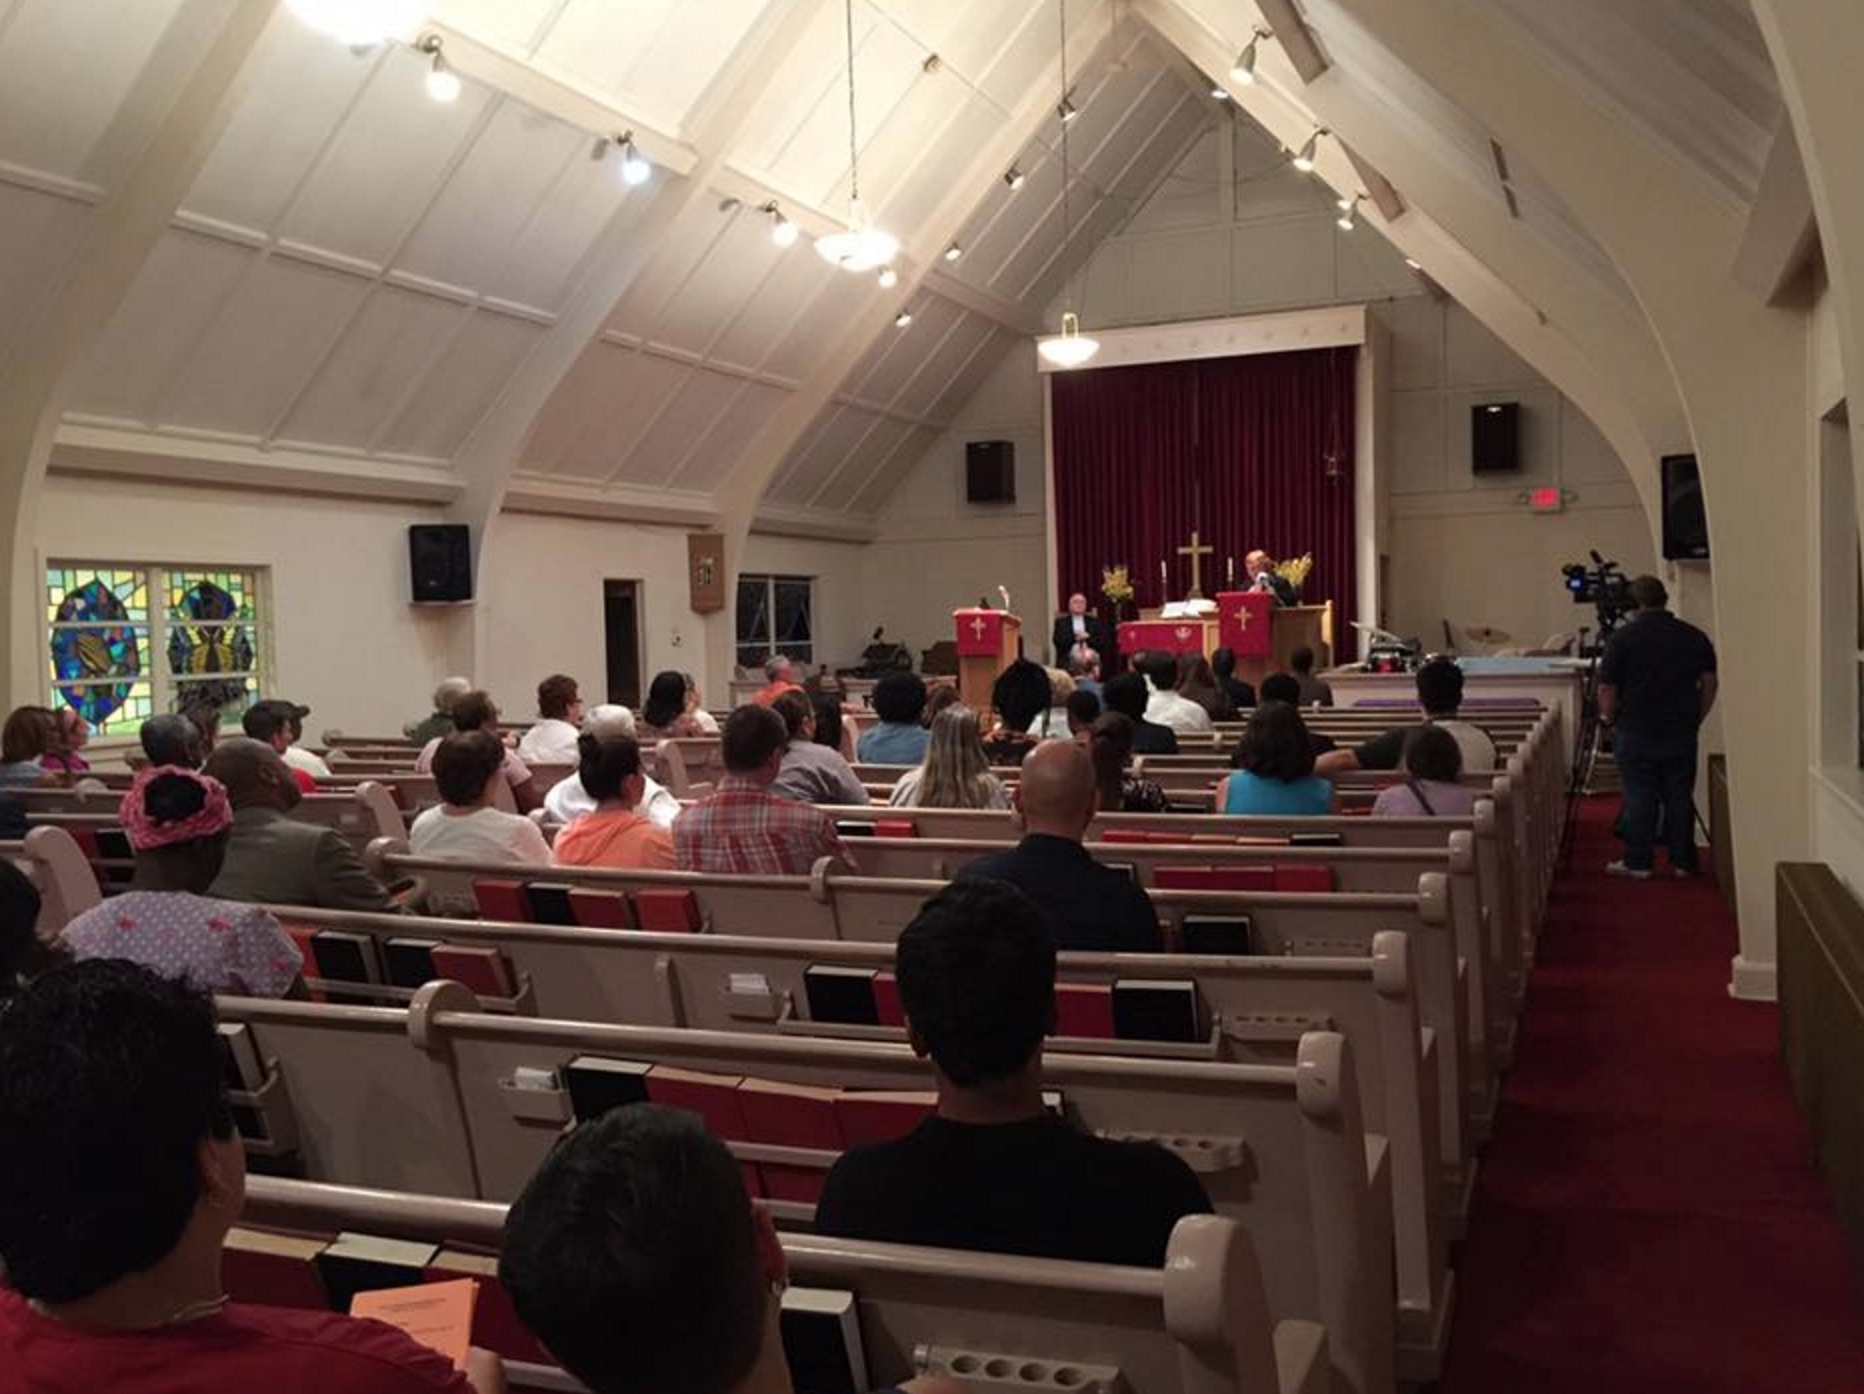 Christ Church Shooting Hd: Residents Come Together At Interfaith Solidarity Event In